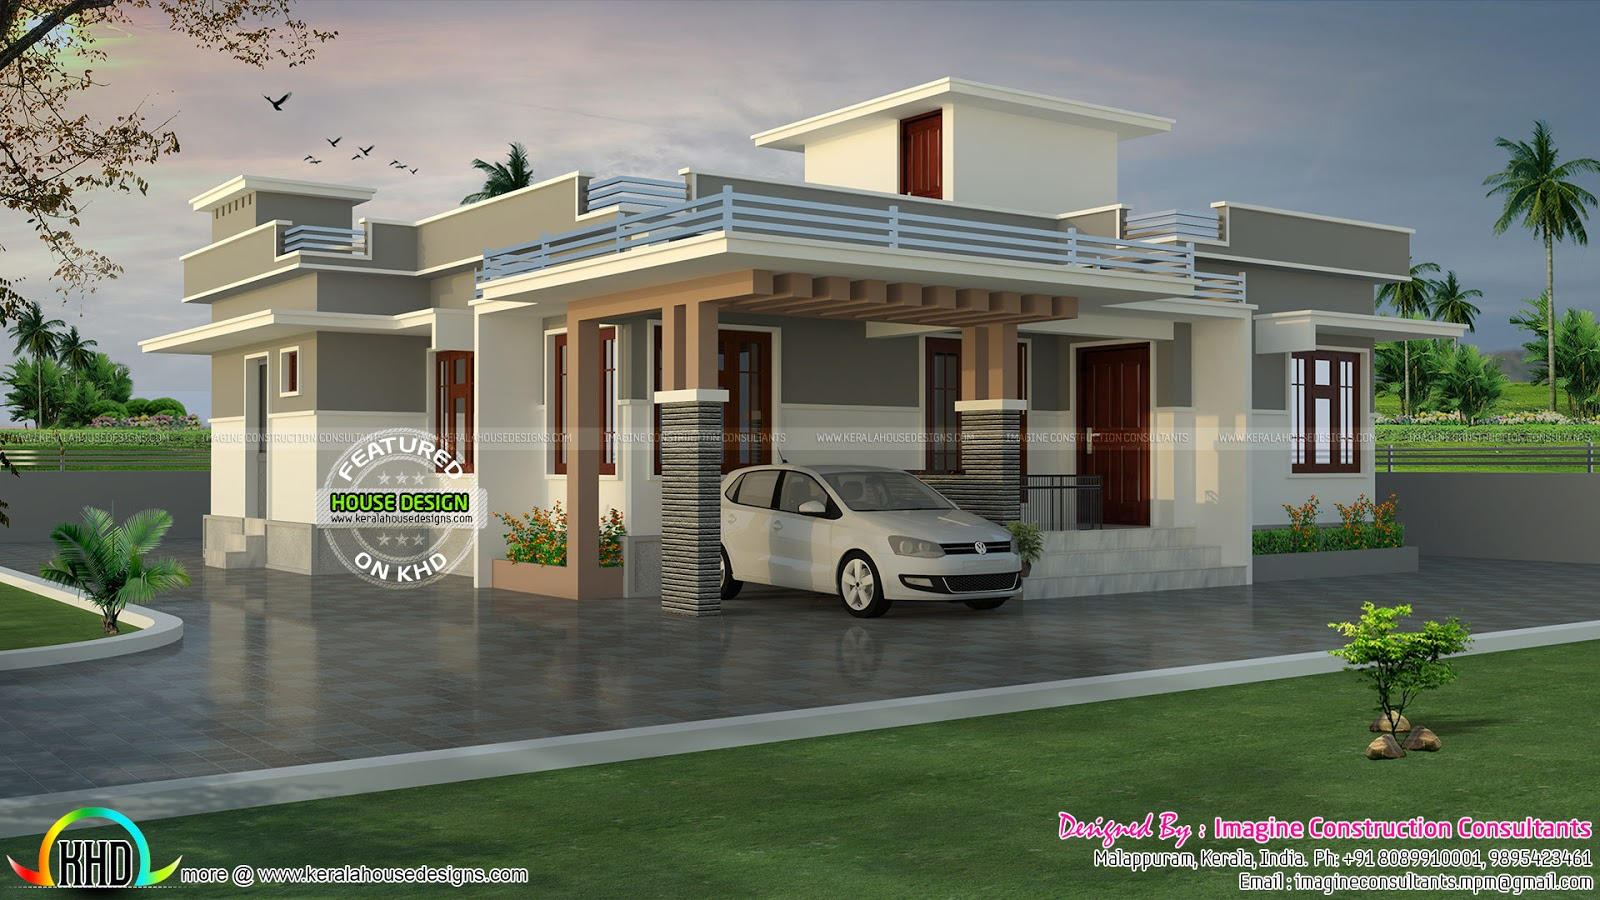 1200 sq ft lakhs cost estimated house plan kerala for Kerala house plans 1200 sq ft